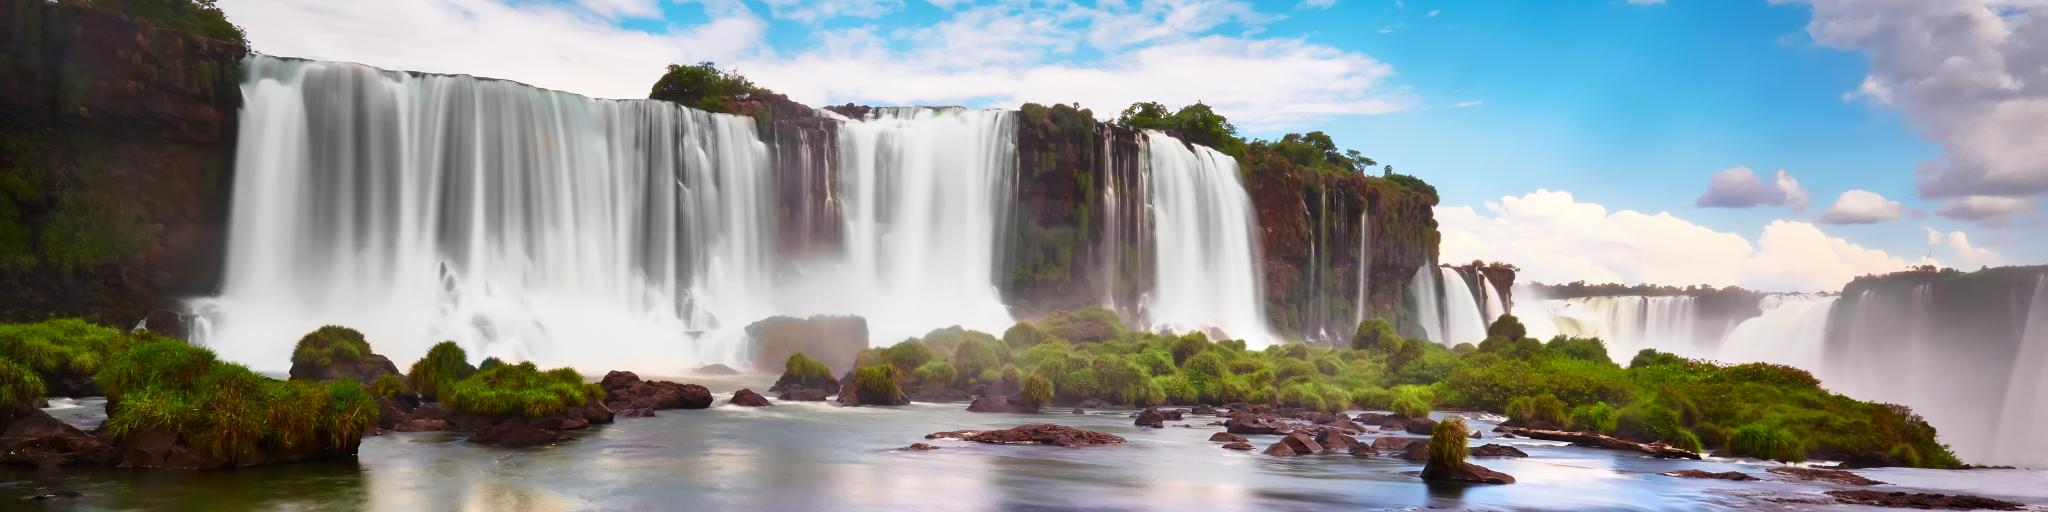 Iguazu Falls on the border between Argentina, Paraguay and Brazil are a natural phenomenon well worth the road trip from Buenos Aires.